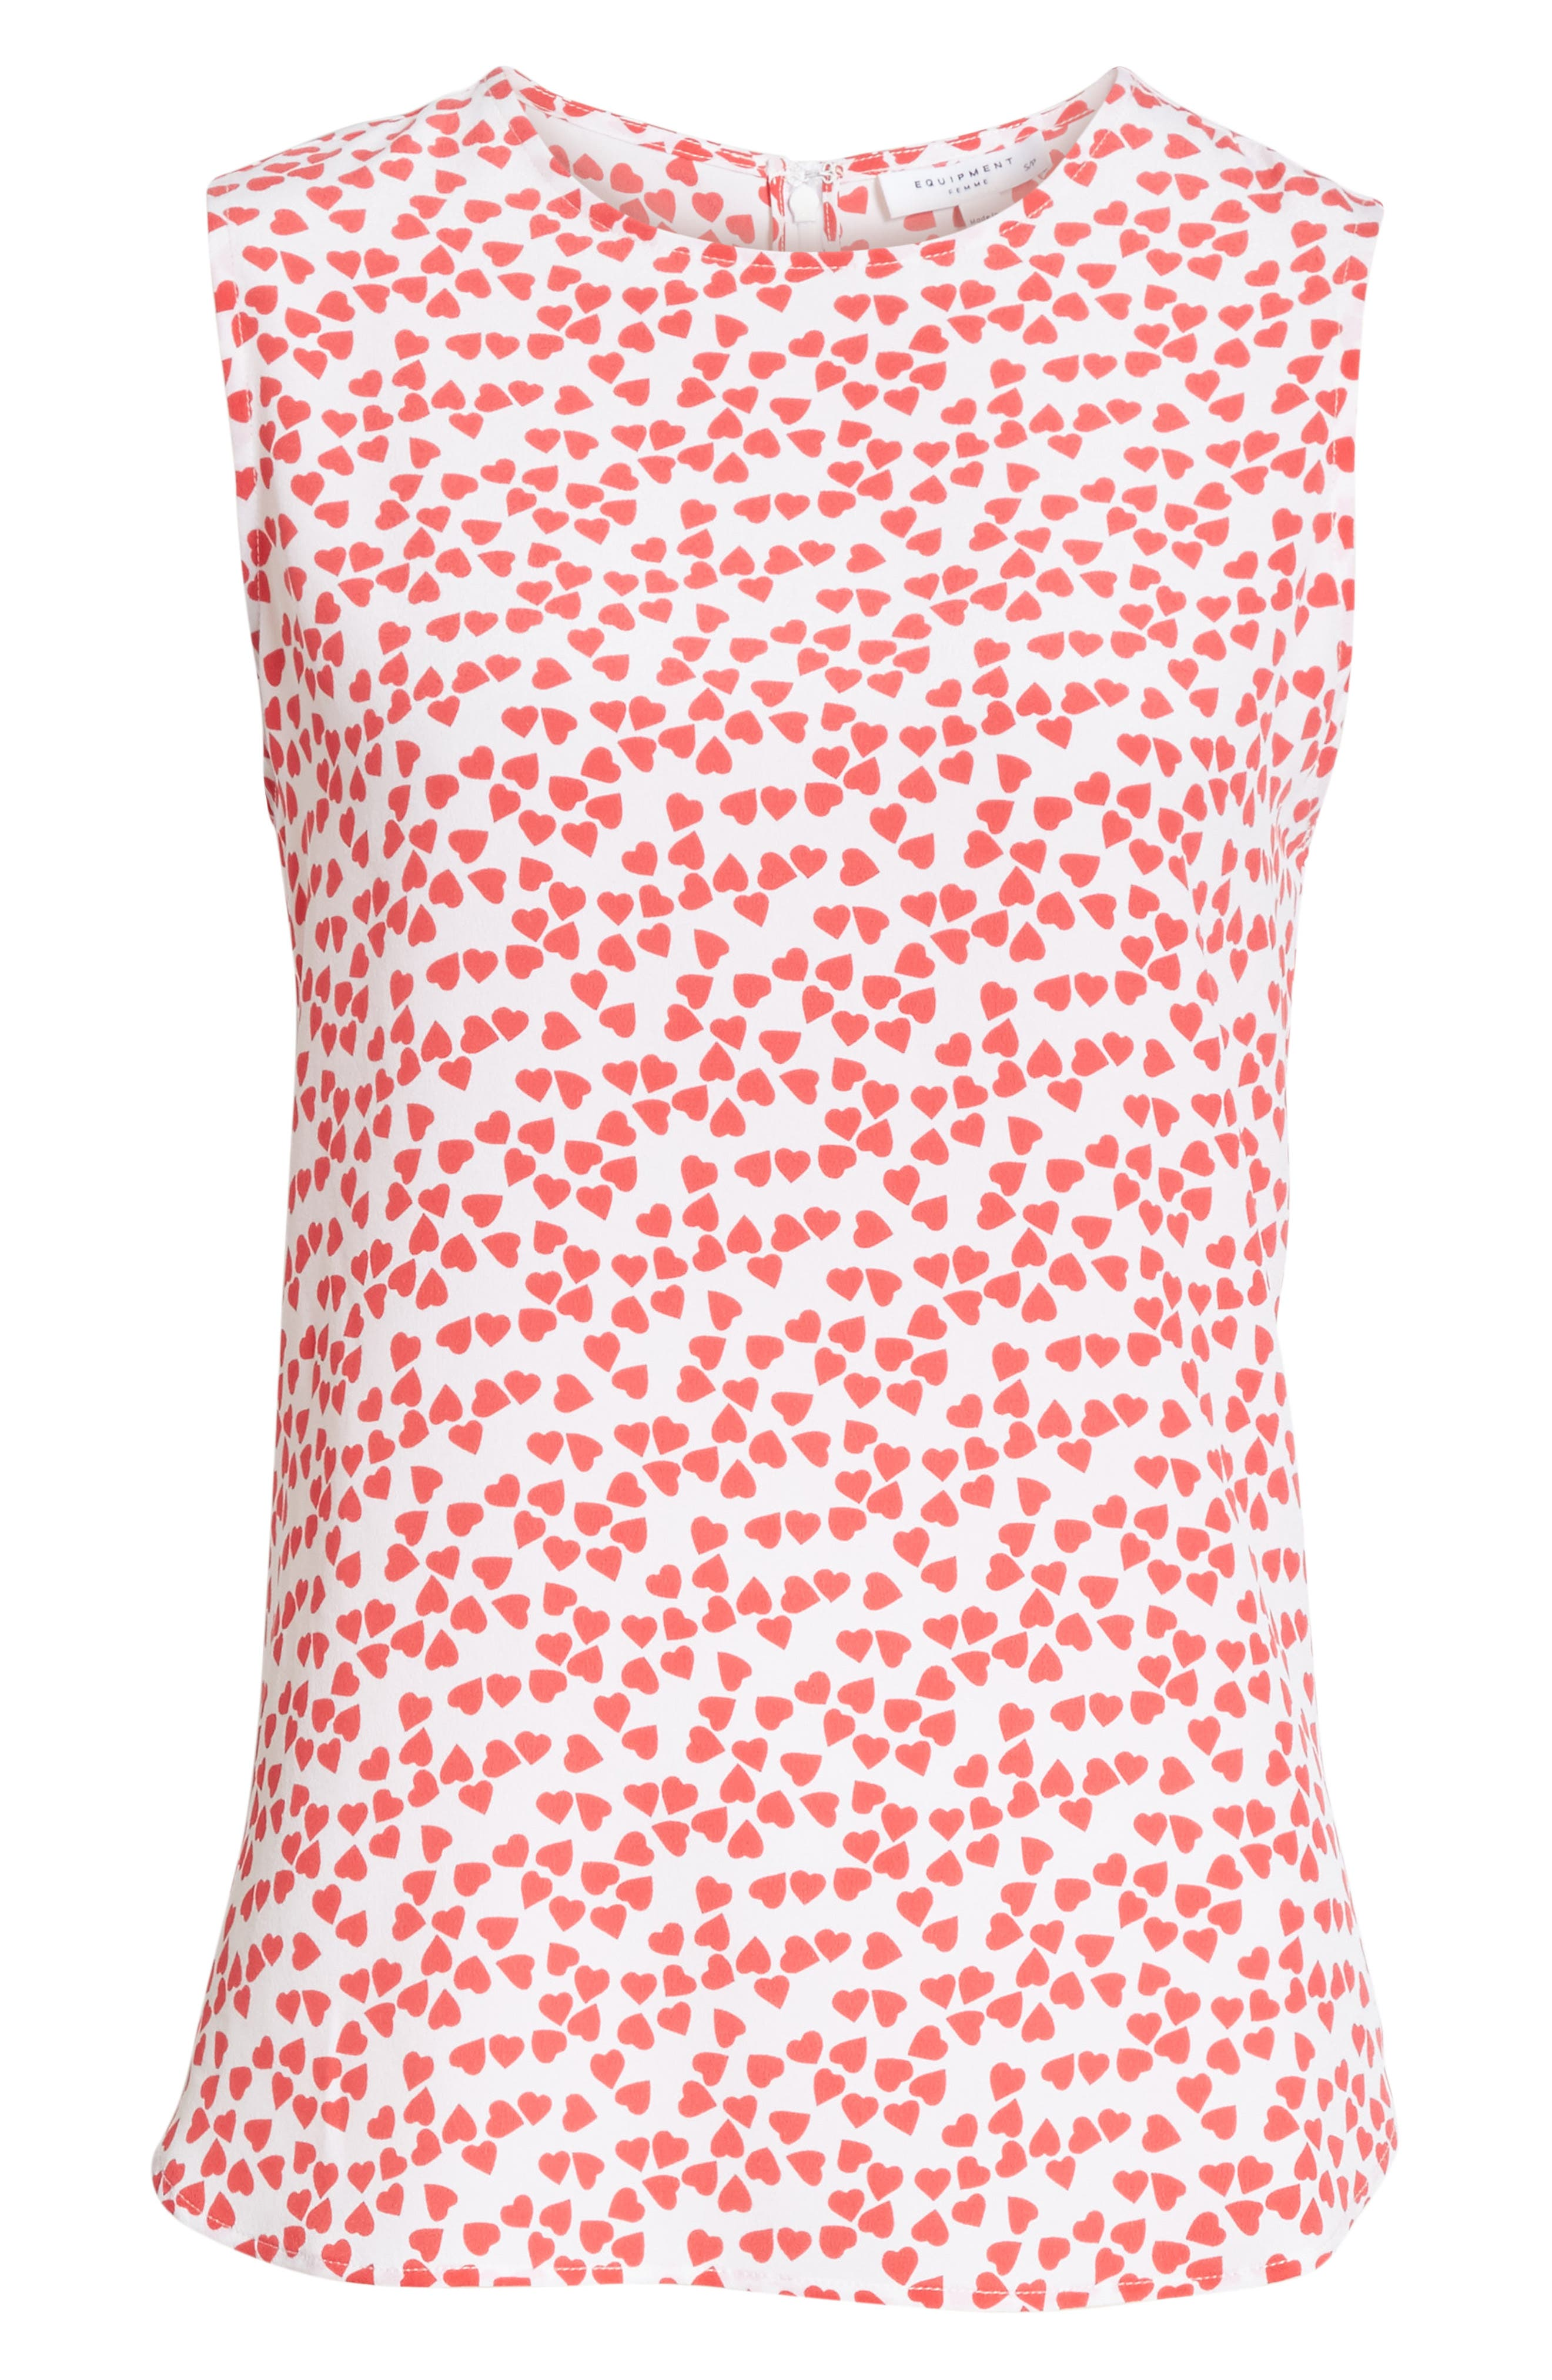 Lyle Print Silk Sleeveless Top,                             Alternate thumbnail 6, color,                             Bright White-Charged Pink